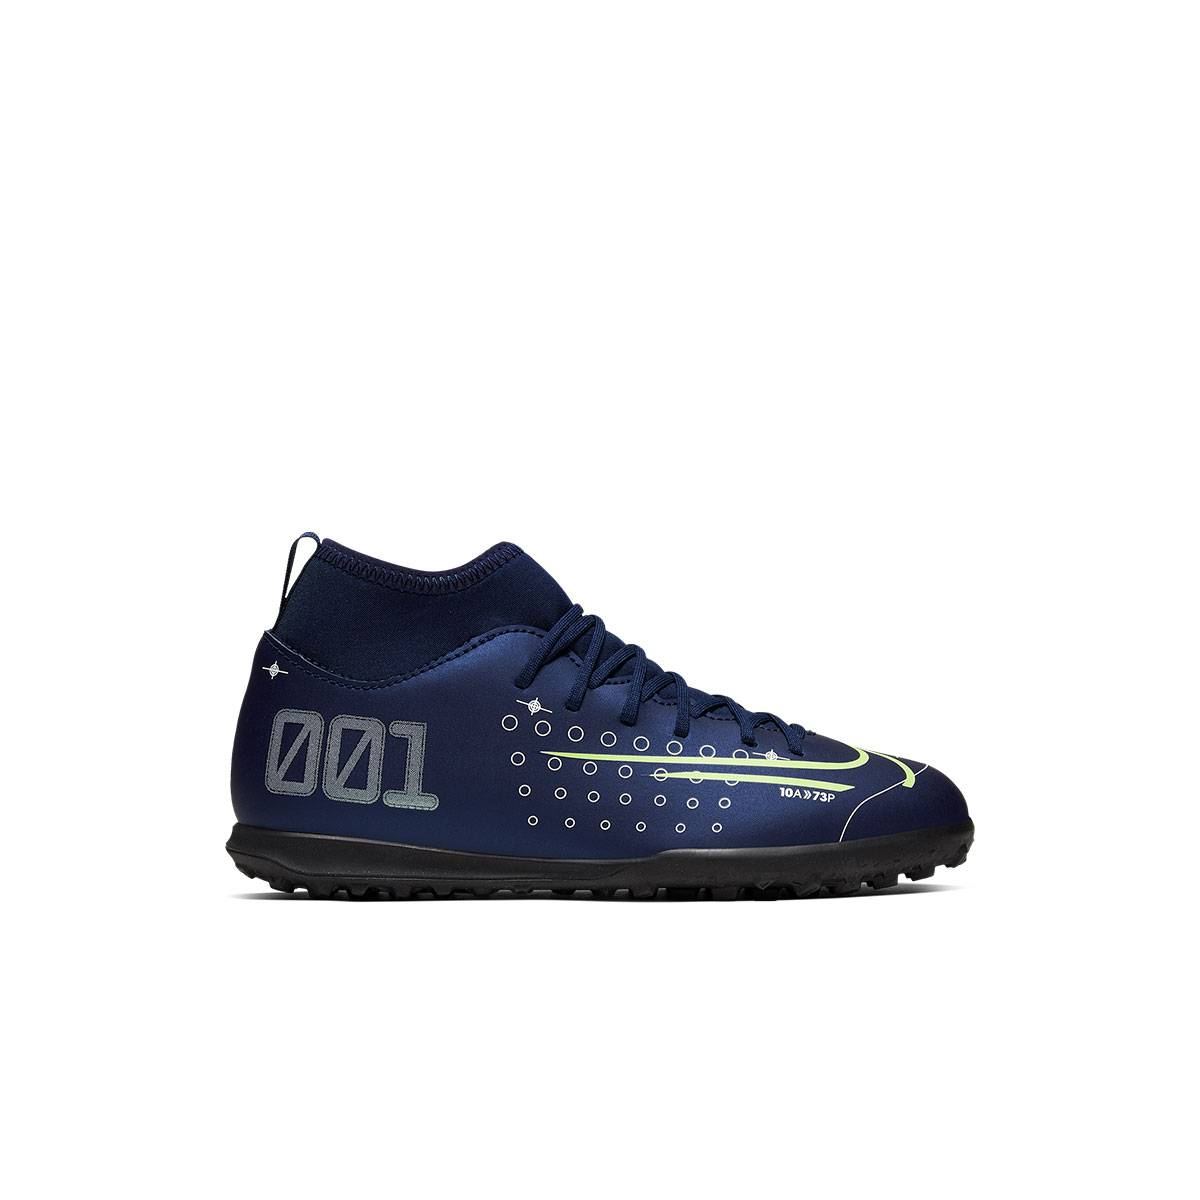 Nike Superfly 7 Club Mds TF Blu Bambino - 38.5 - Bambino